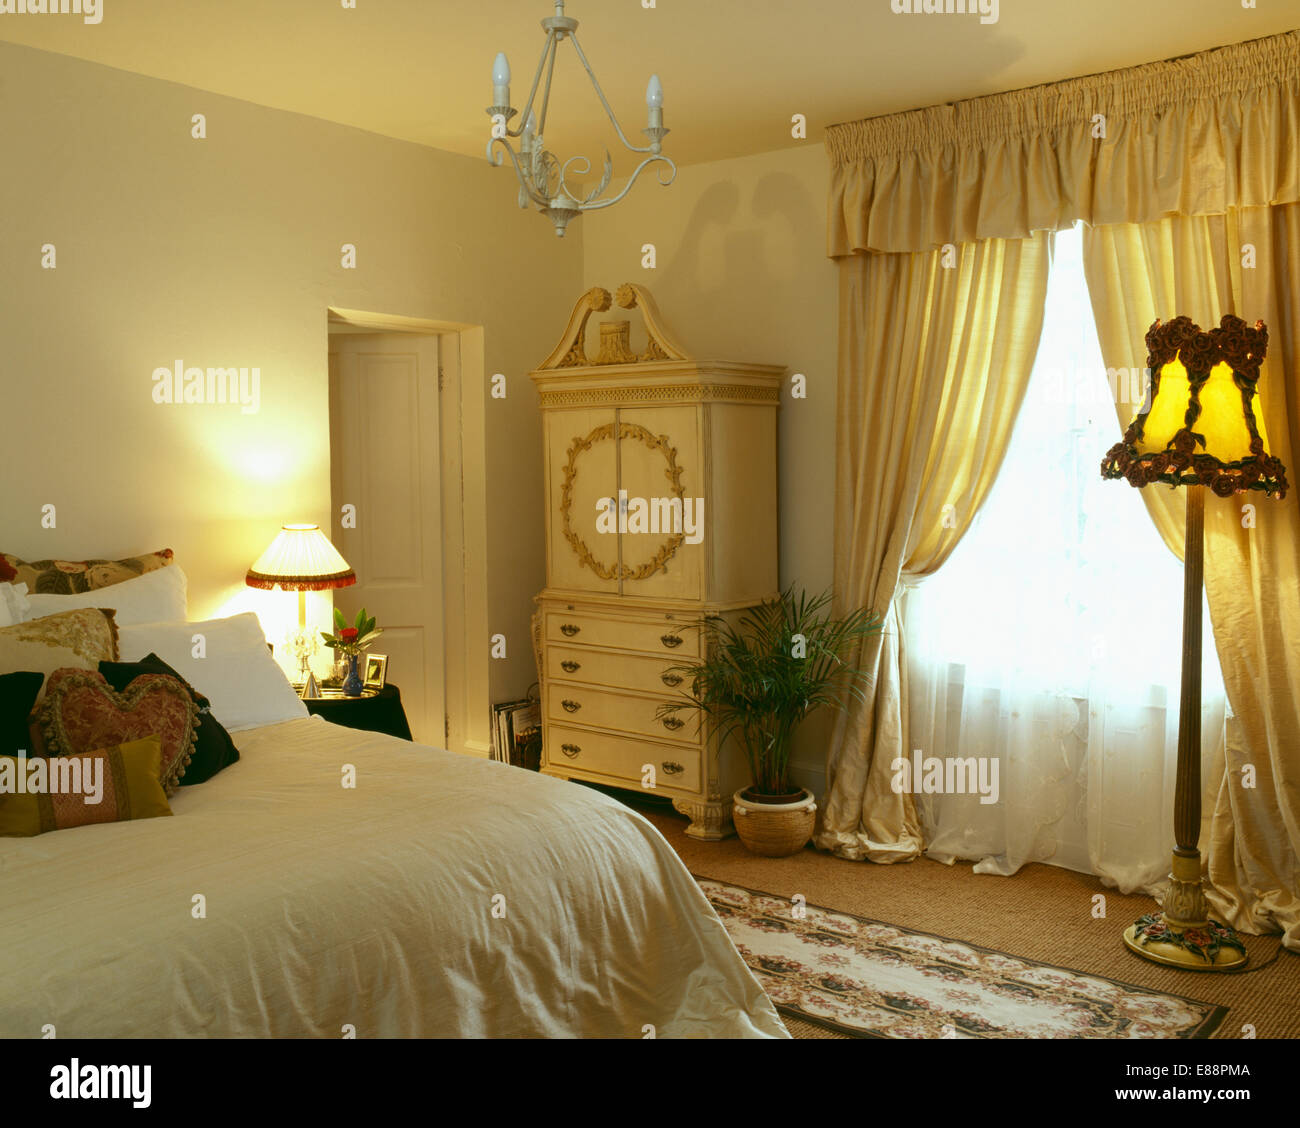 White Voile And Yellow Silk Curtains On Window In Pale Bedroom With Lighted Standard Lamp Cream Cupboard